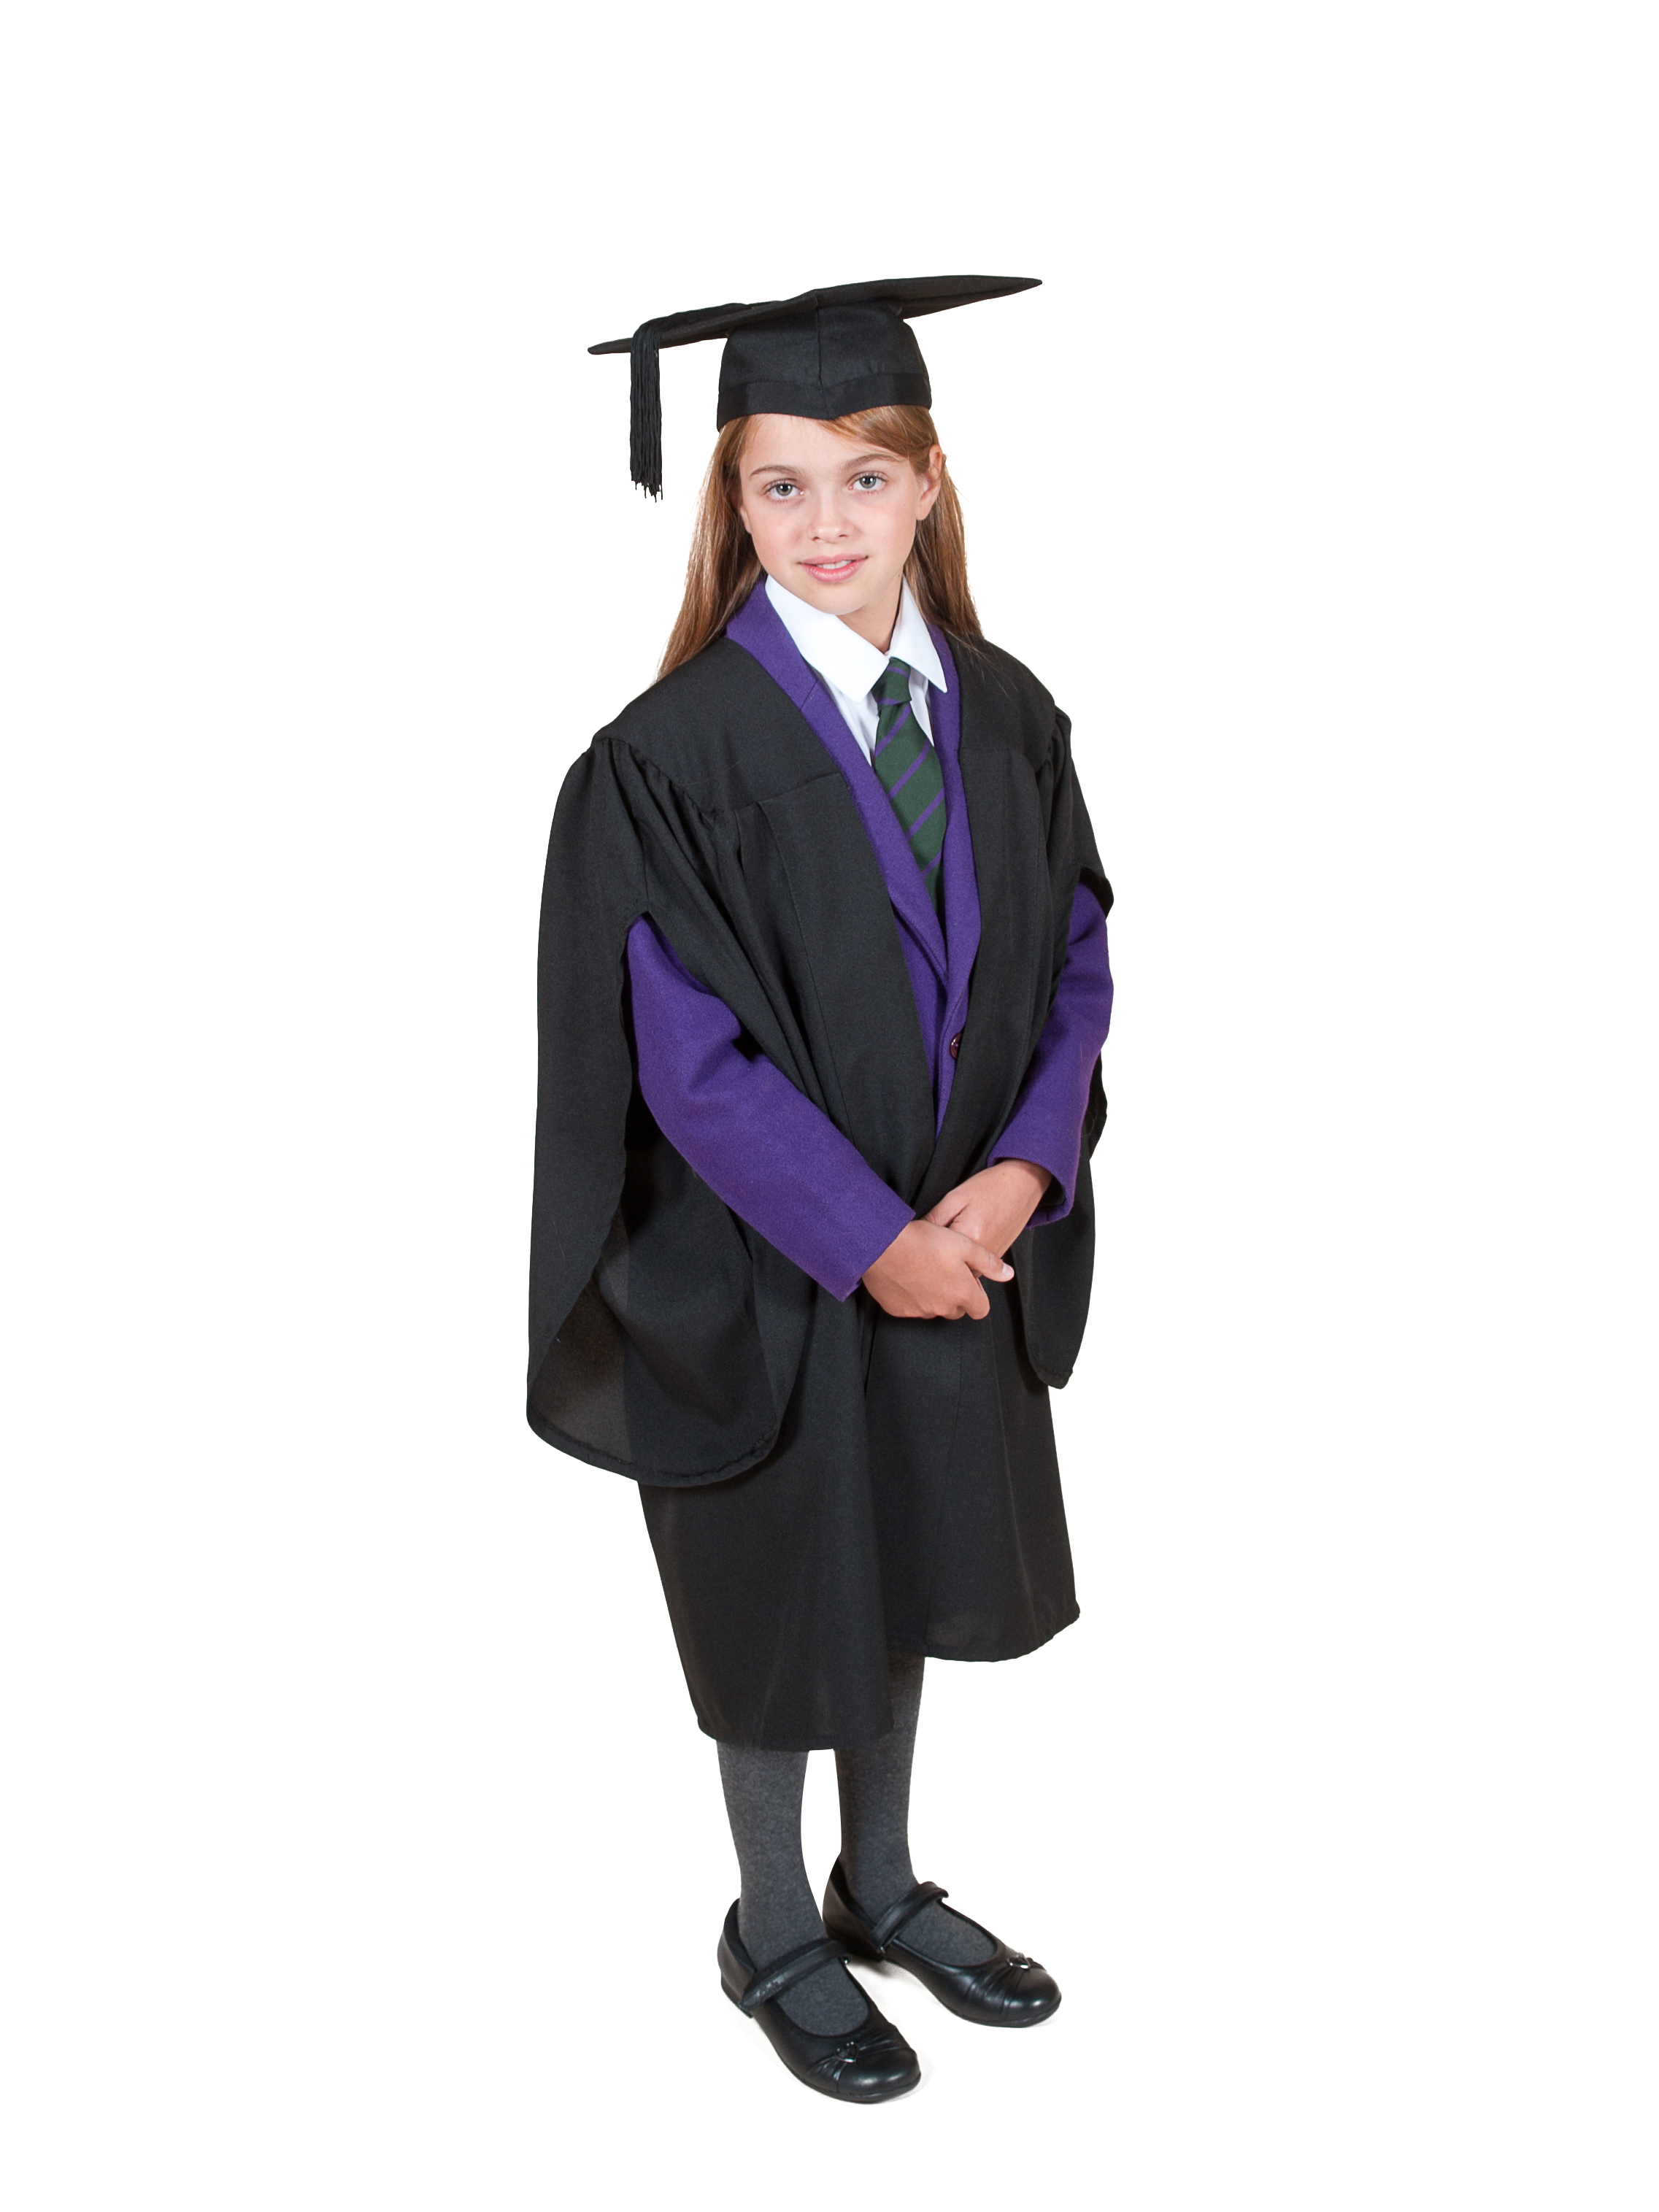 School Gowns: Graduation Gowns for Kids & Young Adults EU